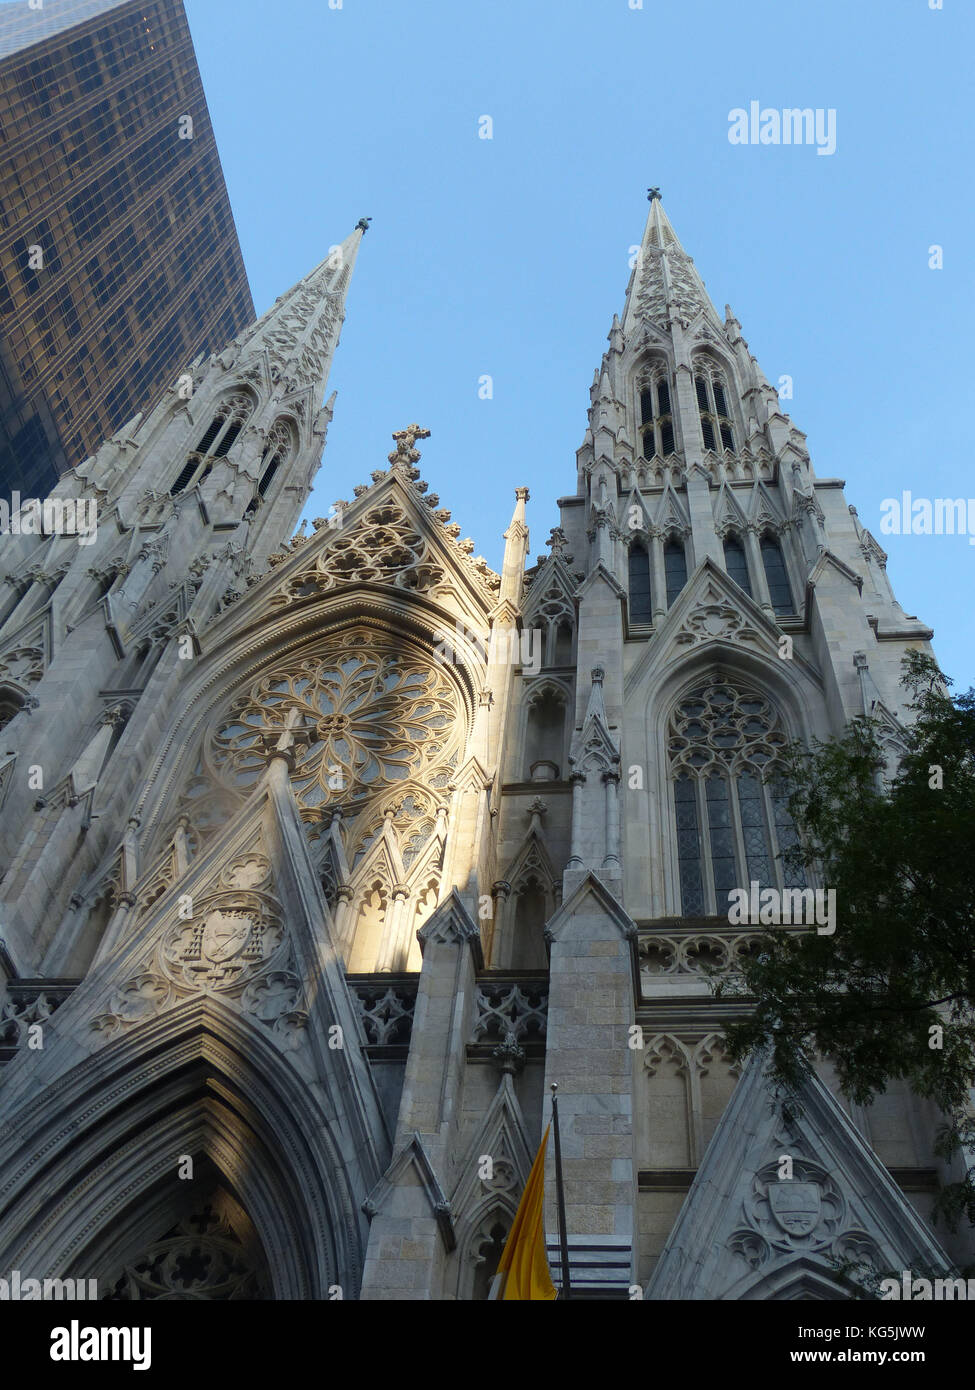 Saint Patrick Cathedral on Fifth Avenue New York with Olympic Tower built by Aristotle Onassis and designed by Architects - Stock Image